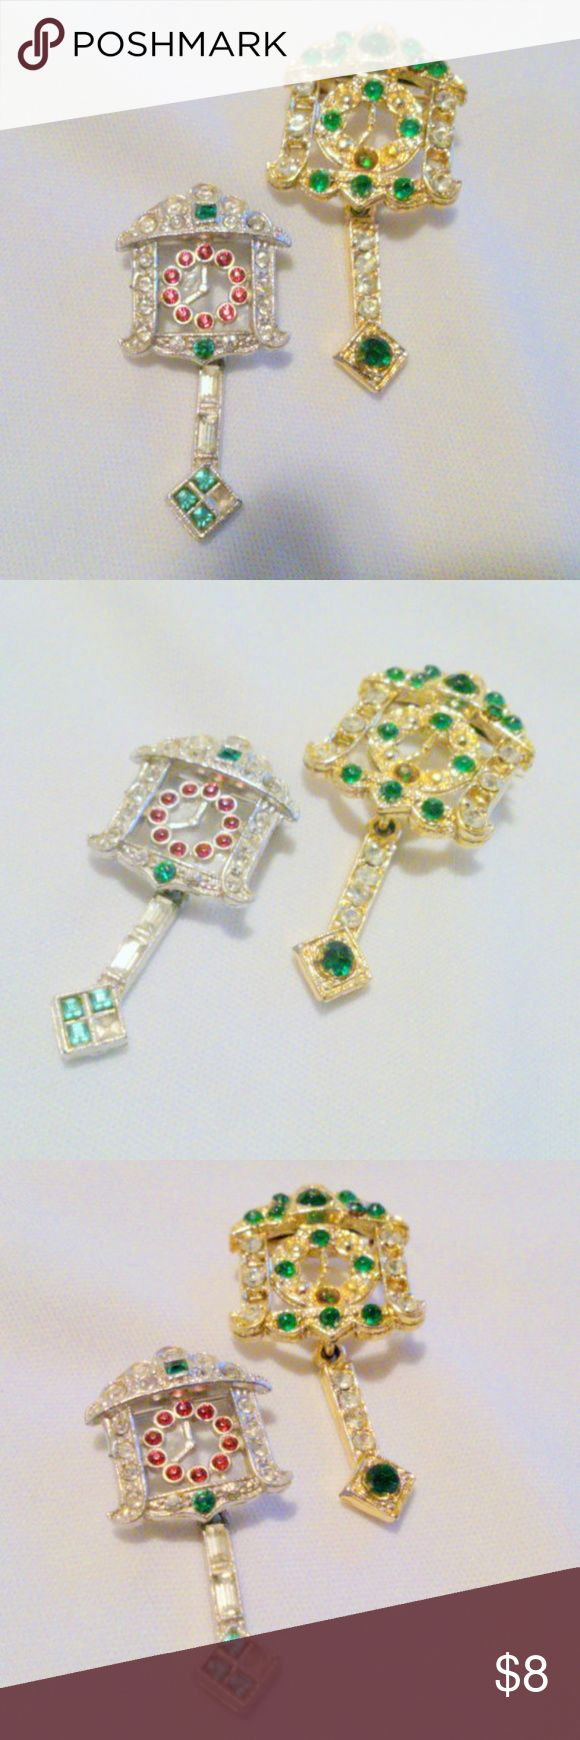 "Vintage Rhinestone Coo Coo Clock Brooches These two coo coo clock brooches are both articulated at the pendulum and are set with multi colored rhinestones. The larger one in done in a gold finish and is set with green and clear rhinestones. It measures 1 3/4"" in length by 7/8"" in width. The smaller one is done in a silver finish and is set with red, green and clear rhinestones and is missing one rhinestone at the end of the pendulum. It measures 1 7/16"" in length by 3/4"" in width. Circa…"